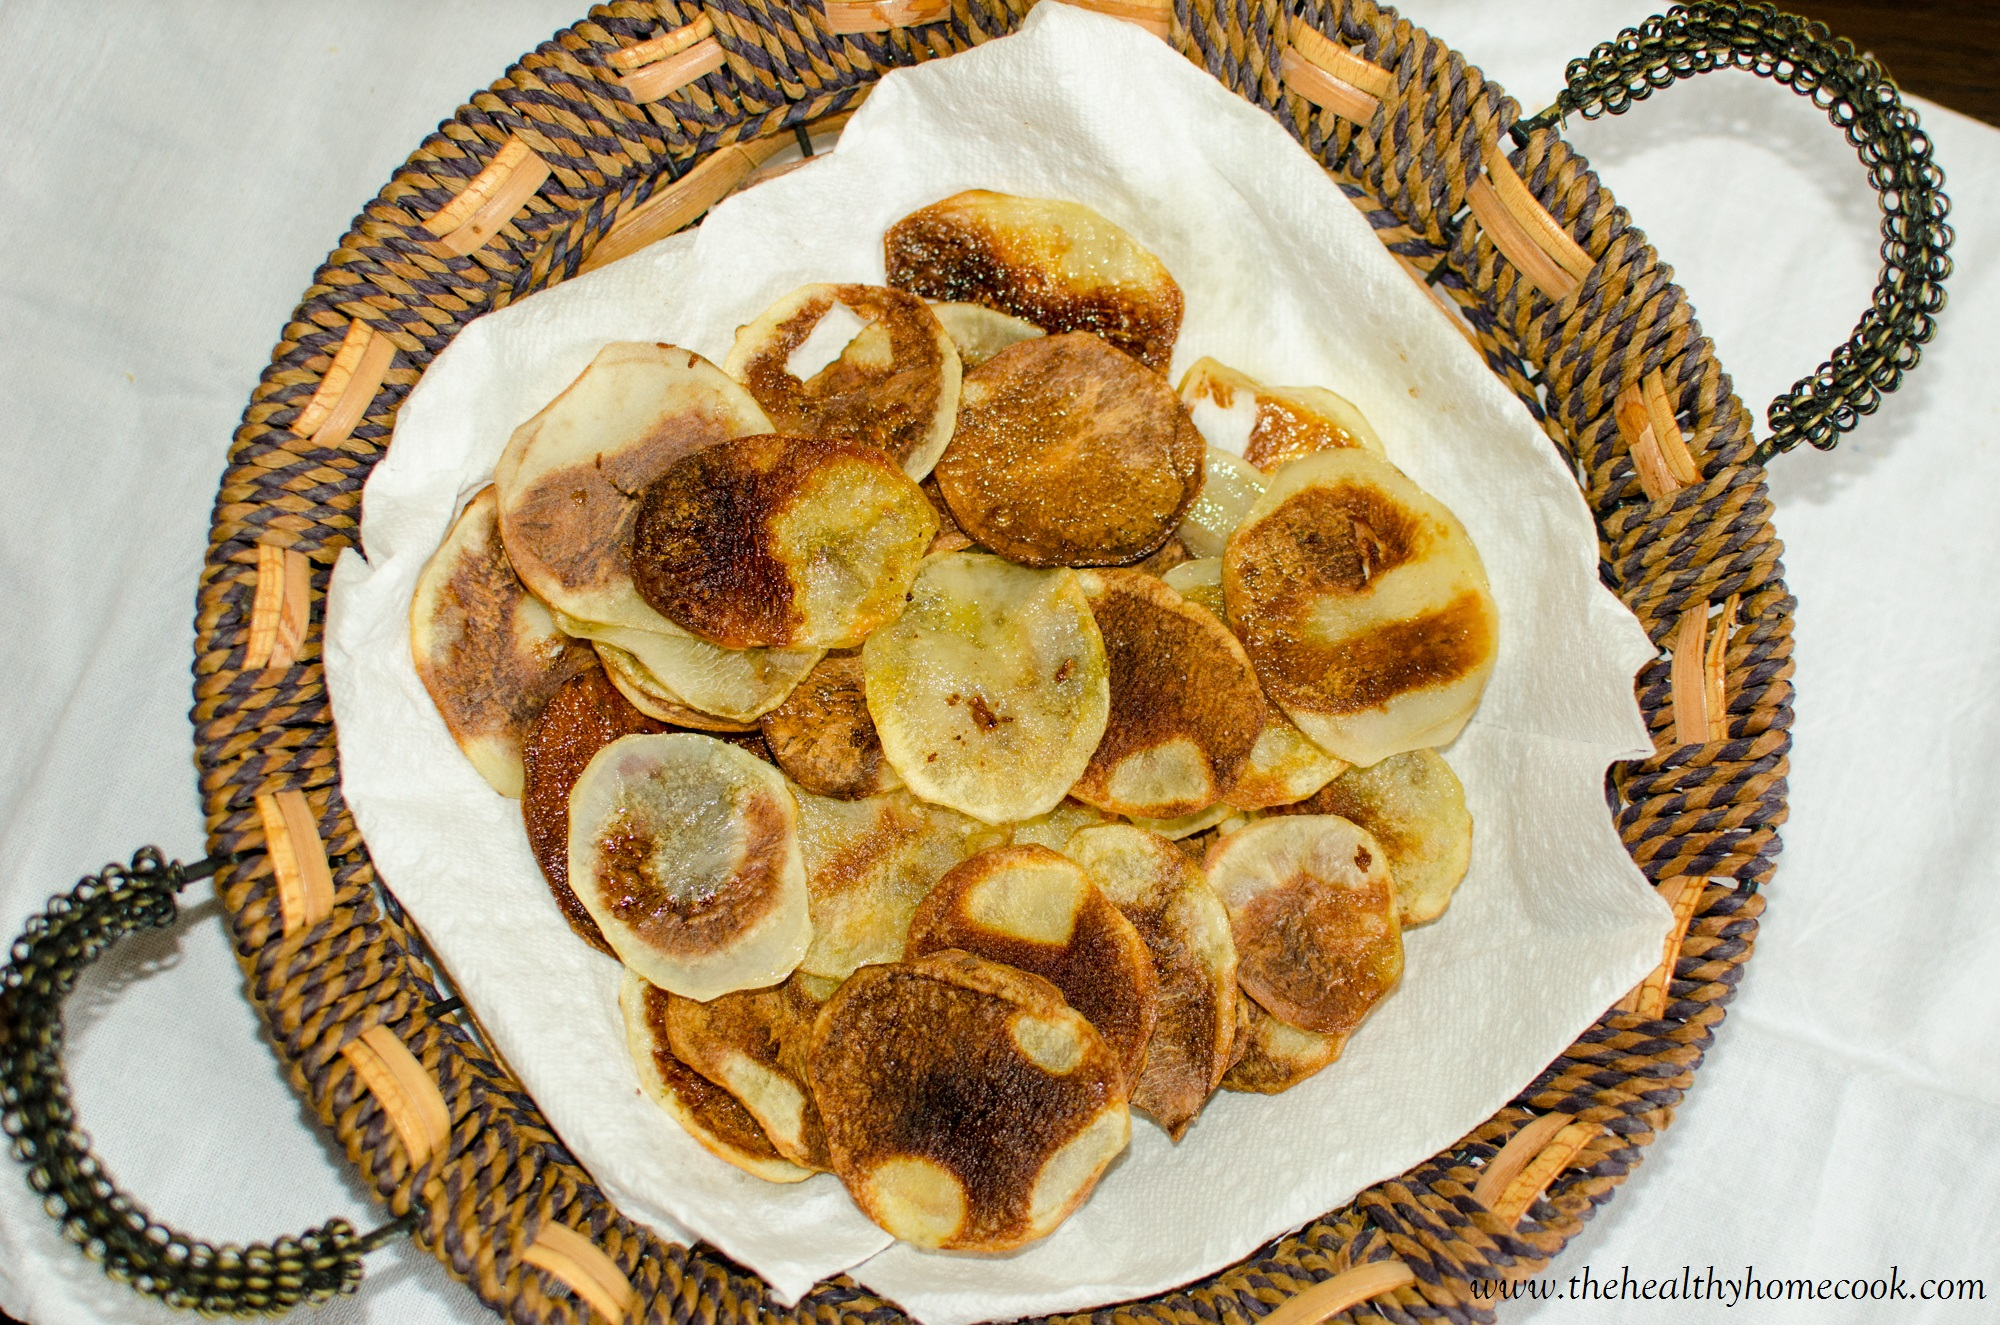 Make your own homemade potato chips, baked with a hint of olive oil and salt & pepper. No fryer needed for this healthy version!